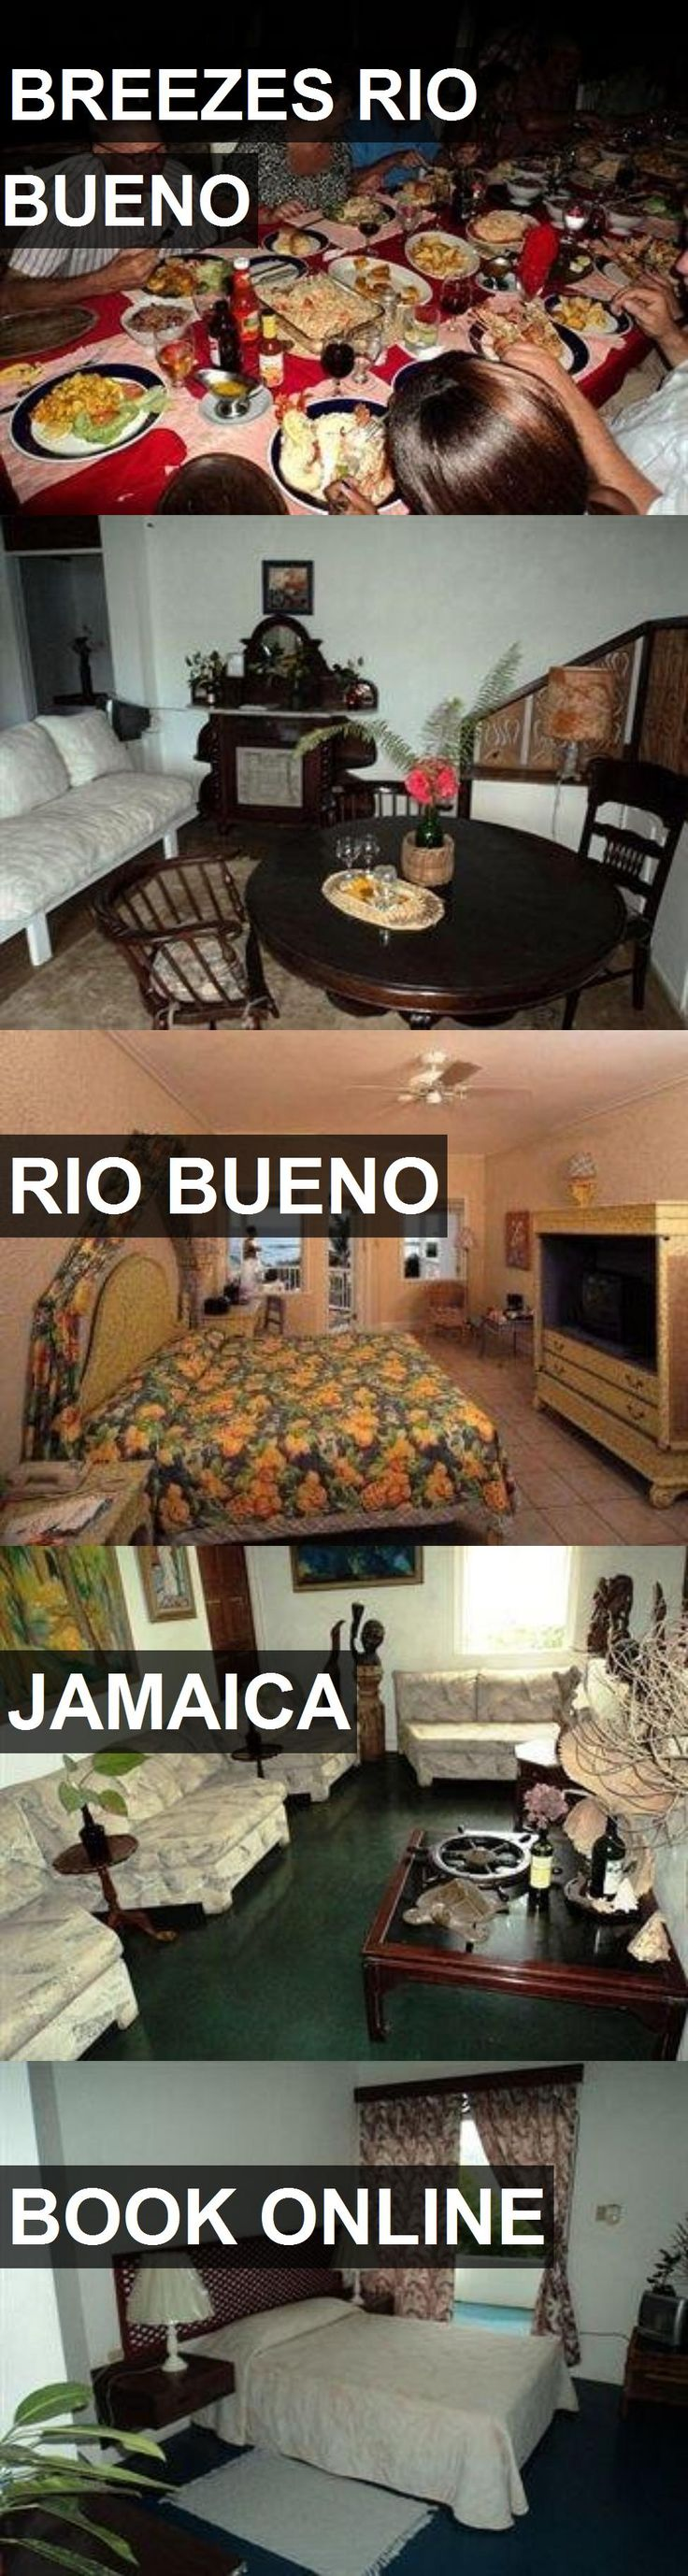 Hotel BREEZES RIO BUENO in Rio Bueno, Jamaica. For more information, photos, reviews and best prices please follow the link. #Jamaica #RioBueno #travel #vacation #hotel